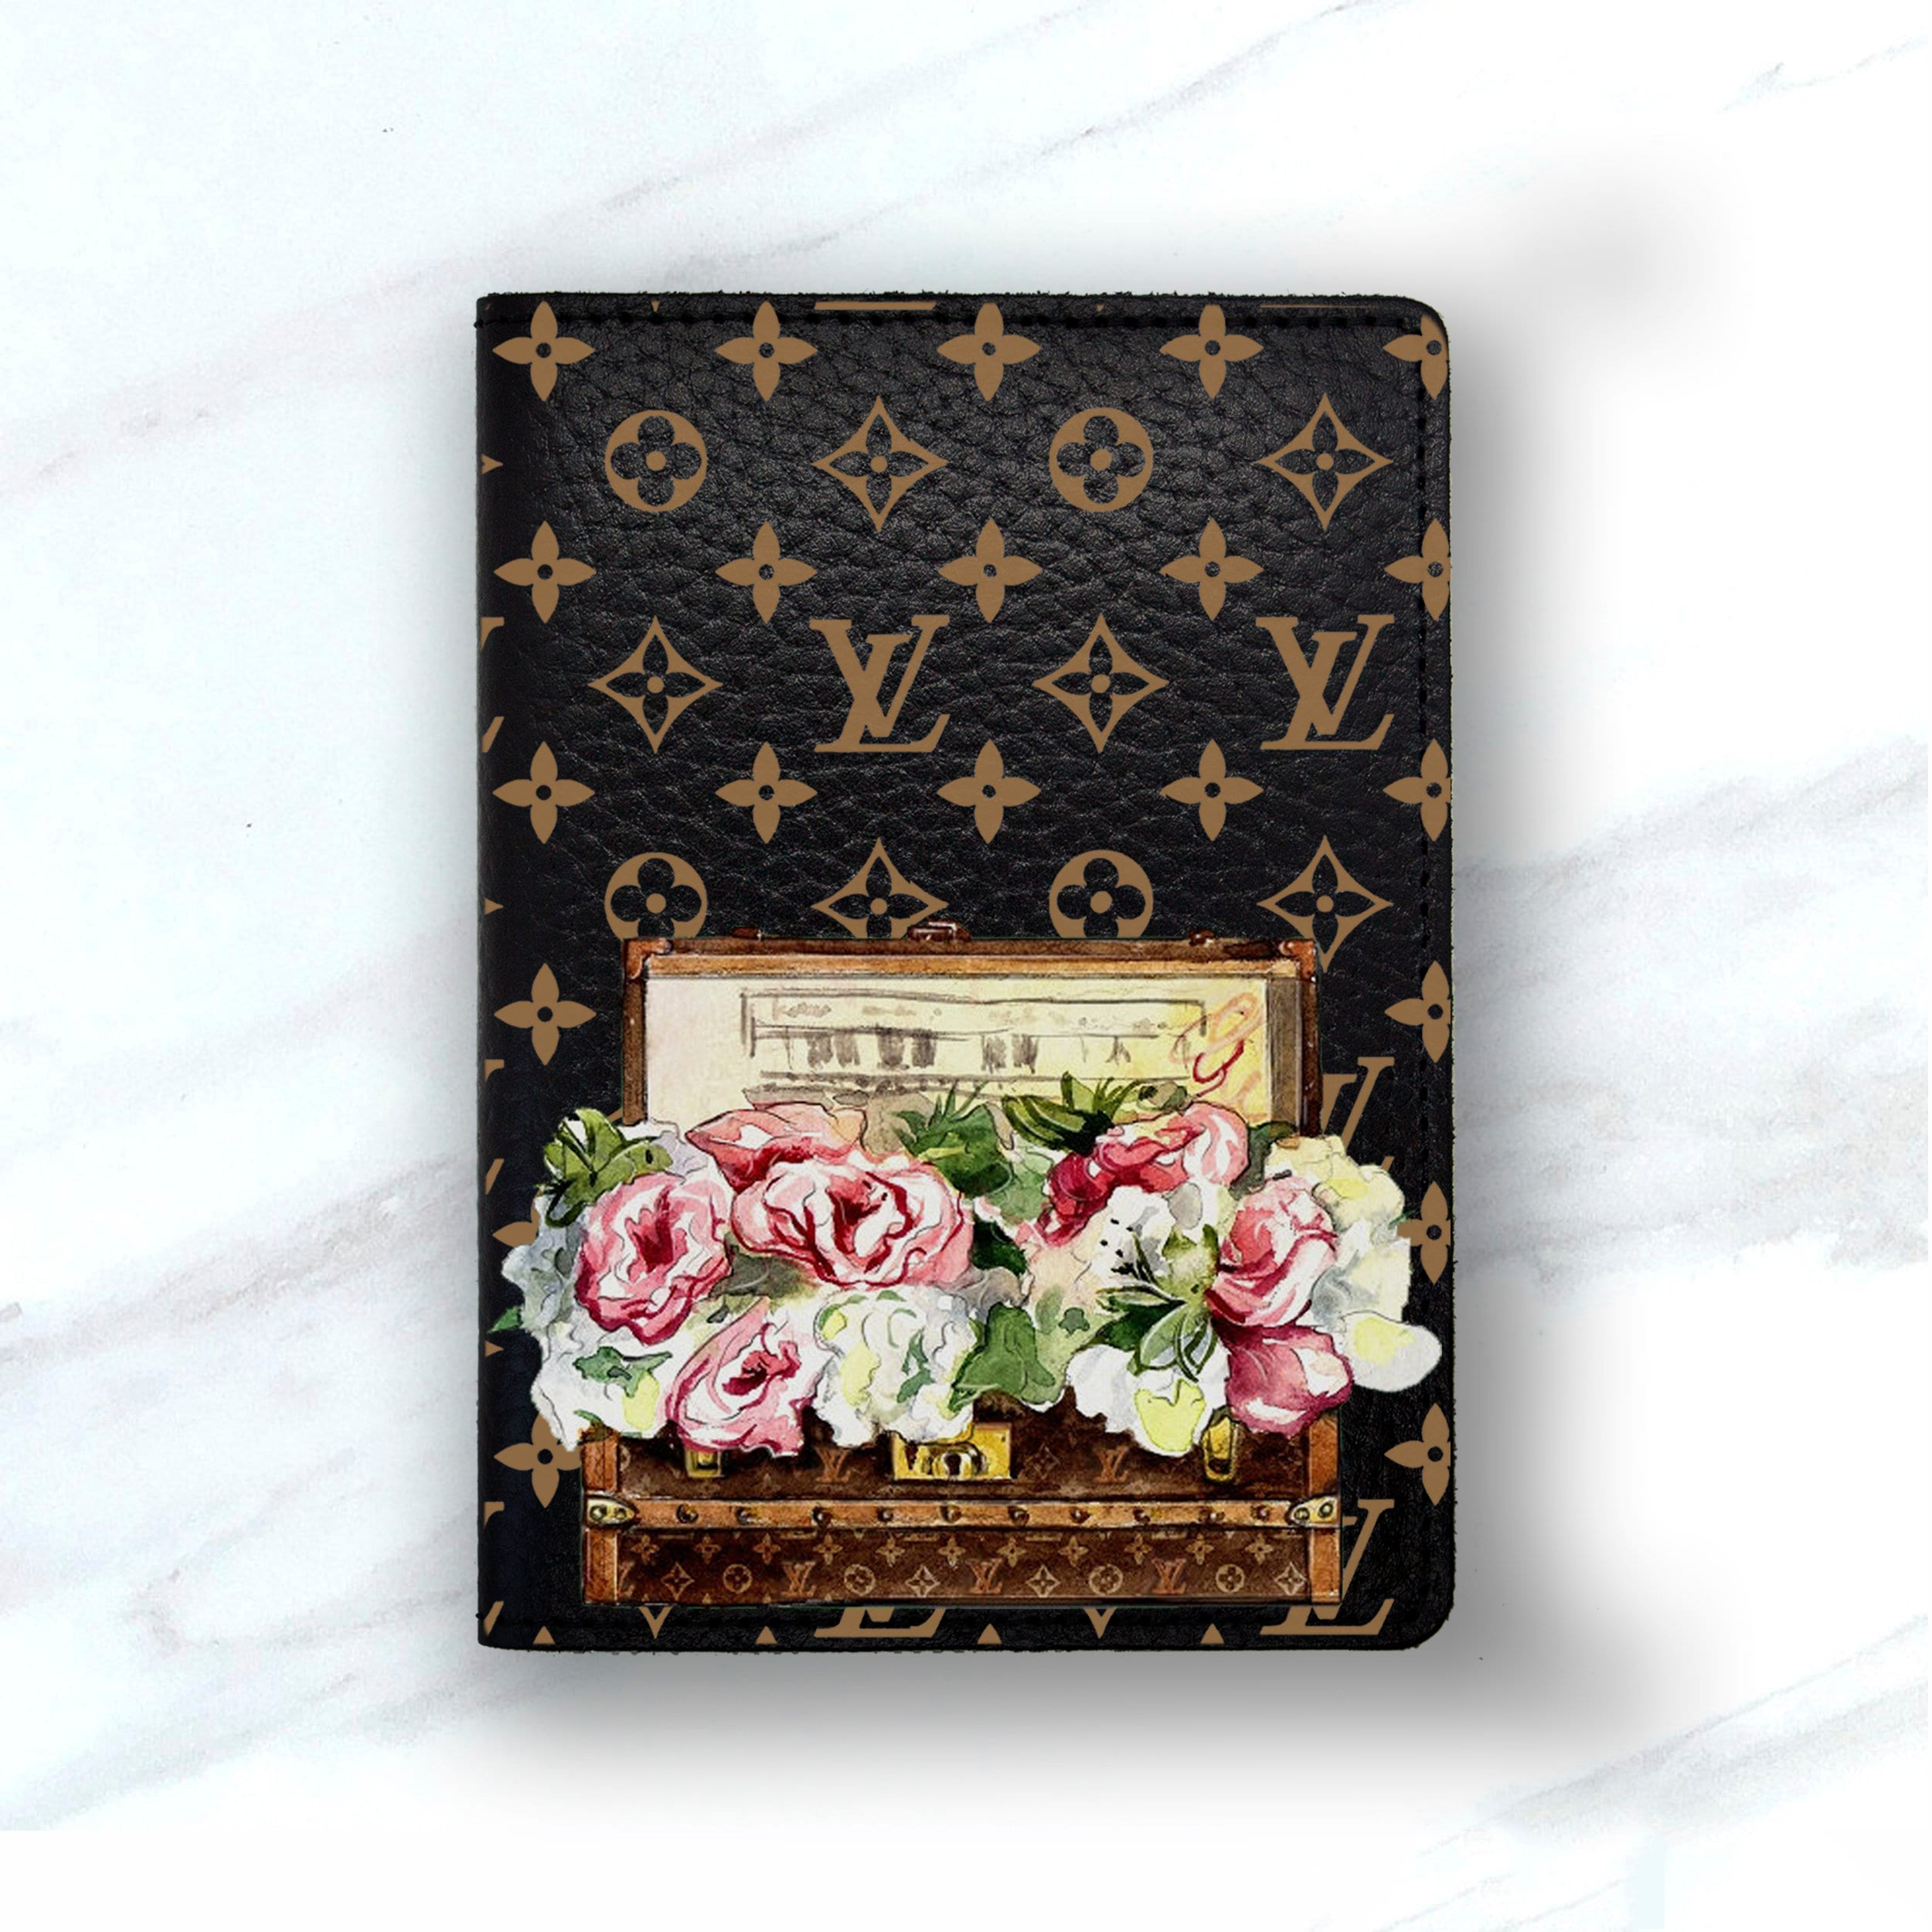 d88b7f99c56 Louis vuitton passport holder leather louis vuitton passport etsy jpg  2500x2500 Louis vuitton passport case